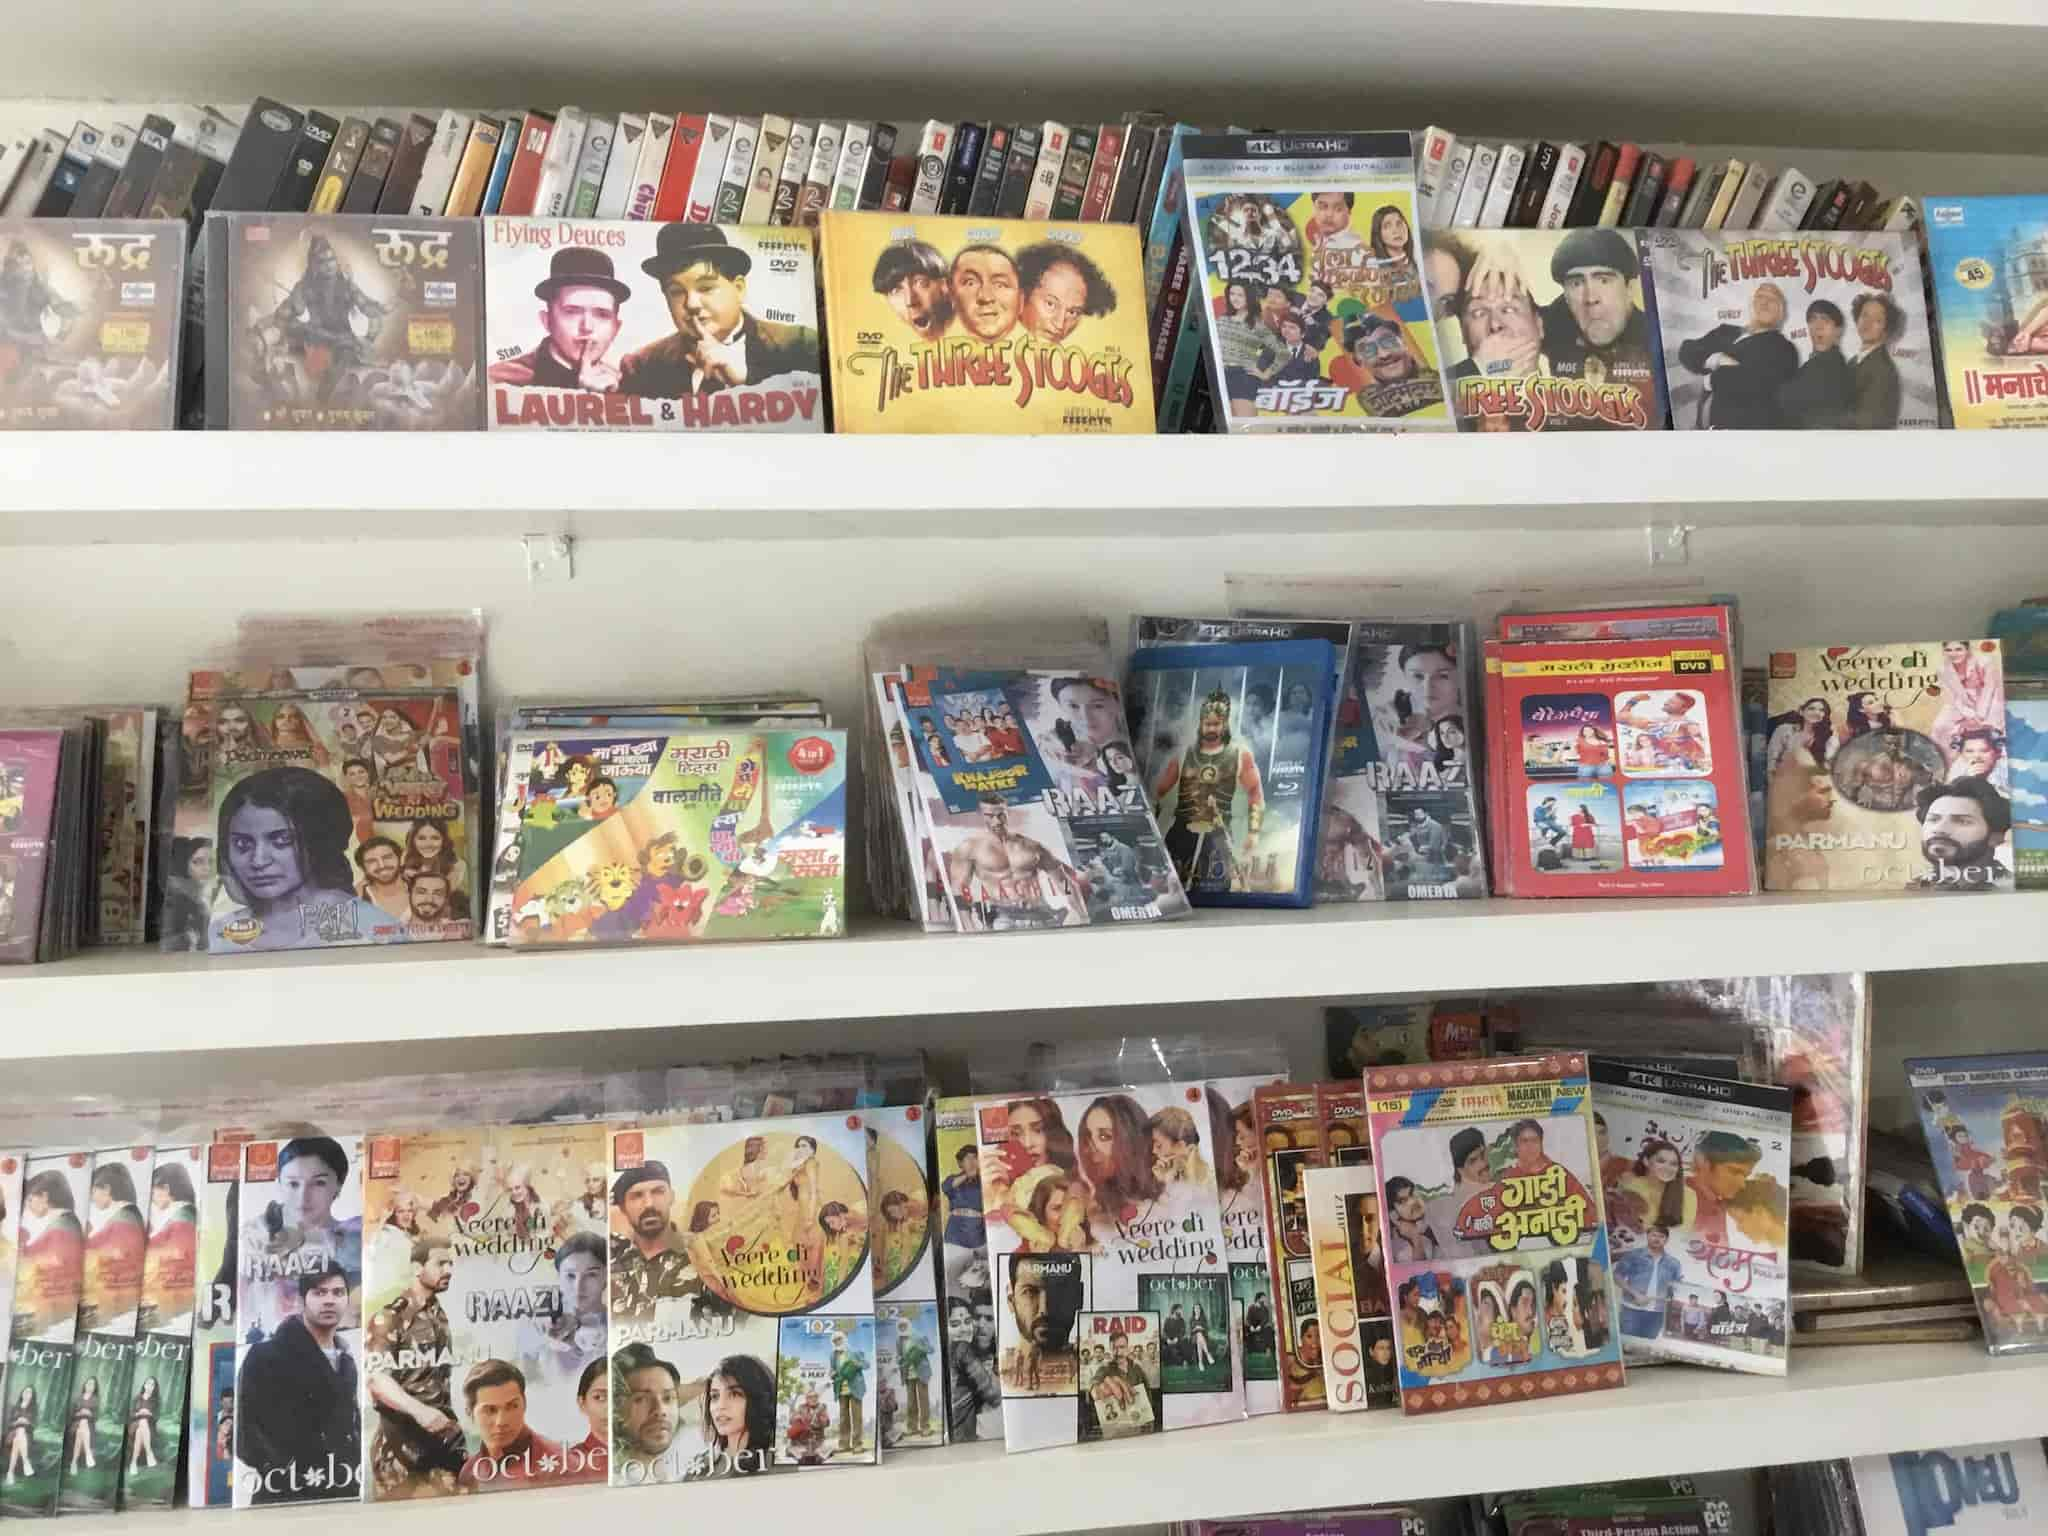 Musica Music Cds And More Photos, Karve Nagar, Pune